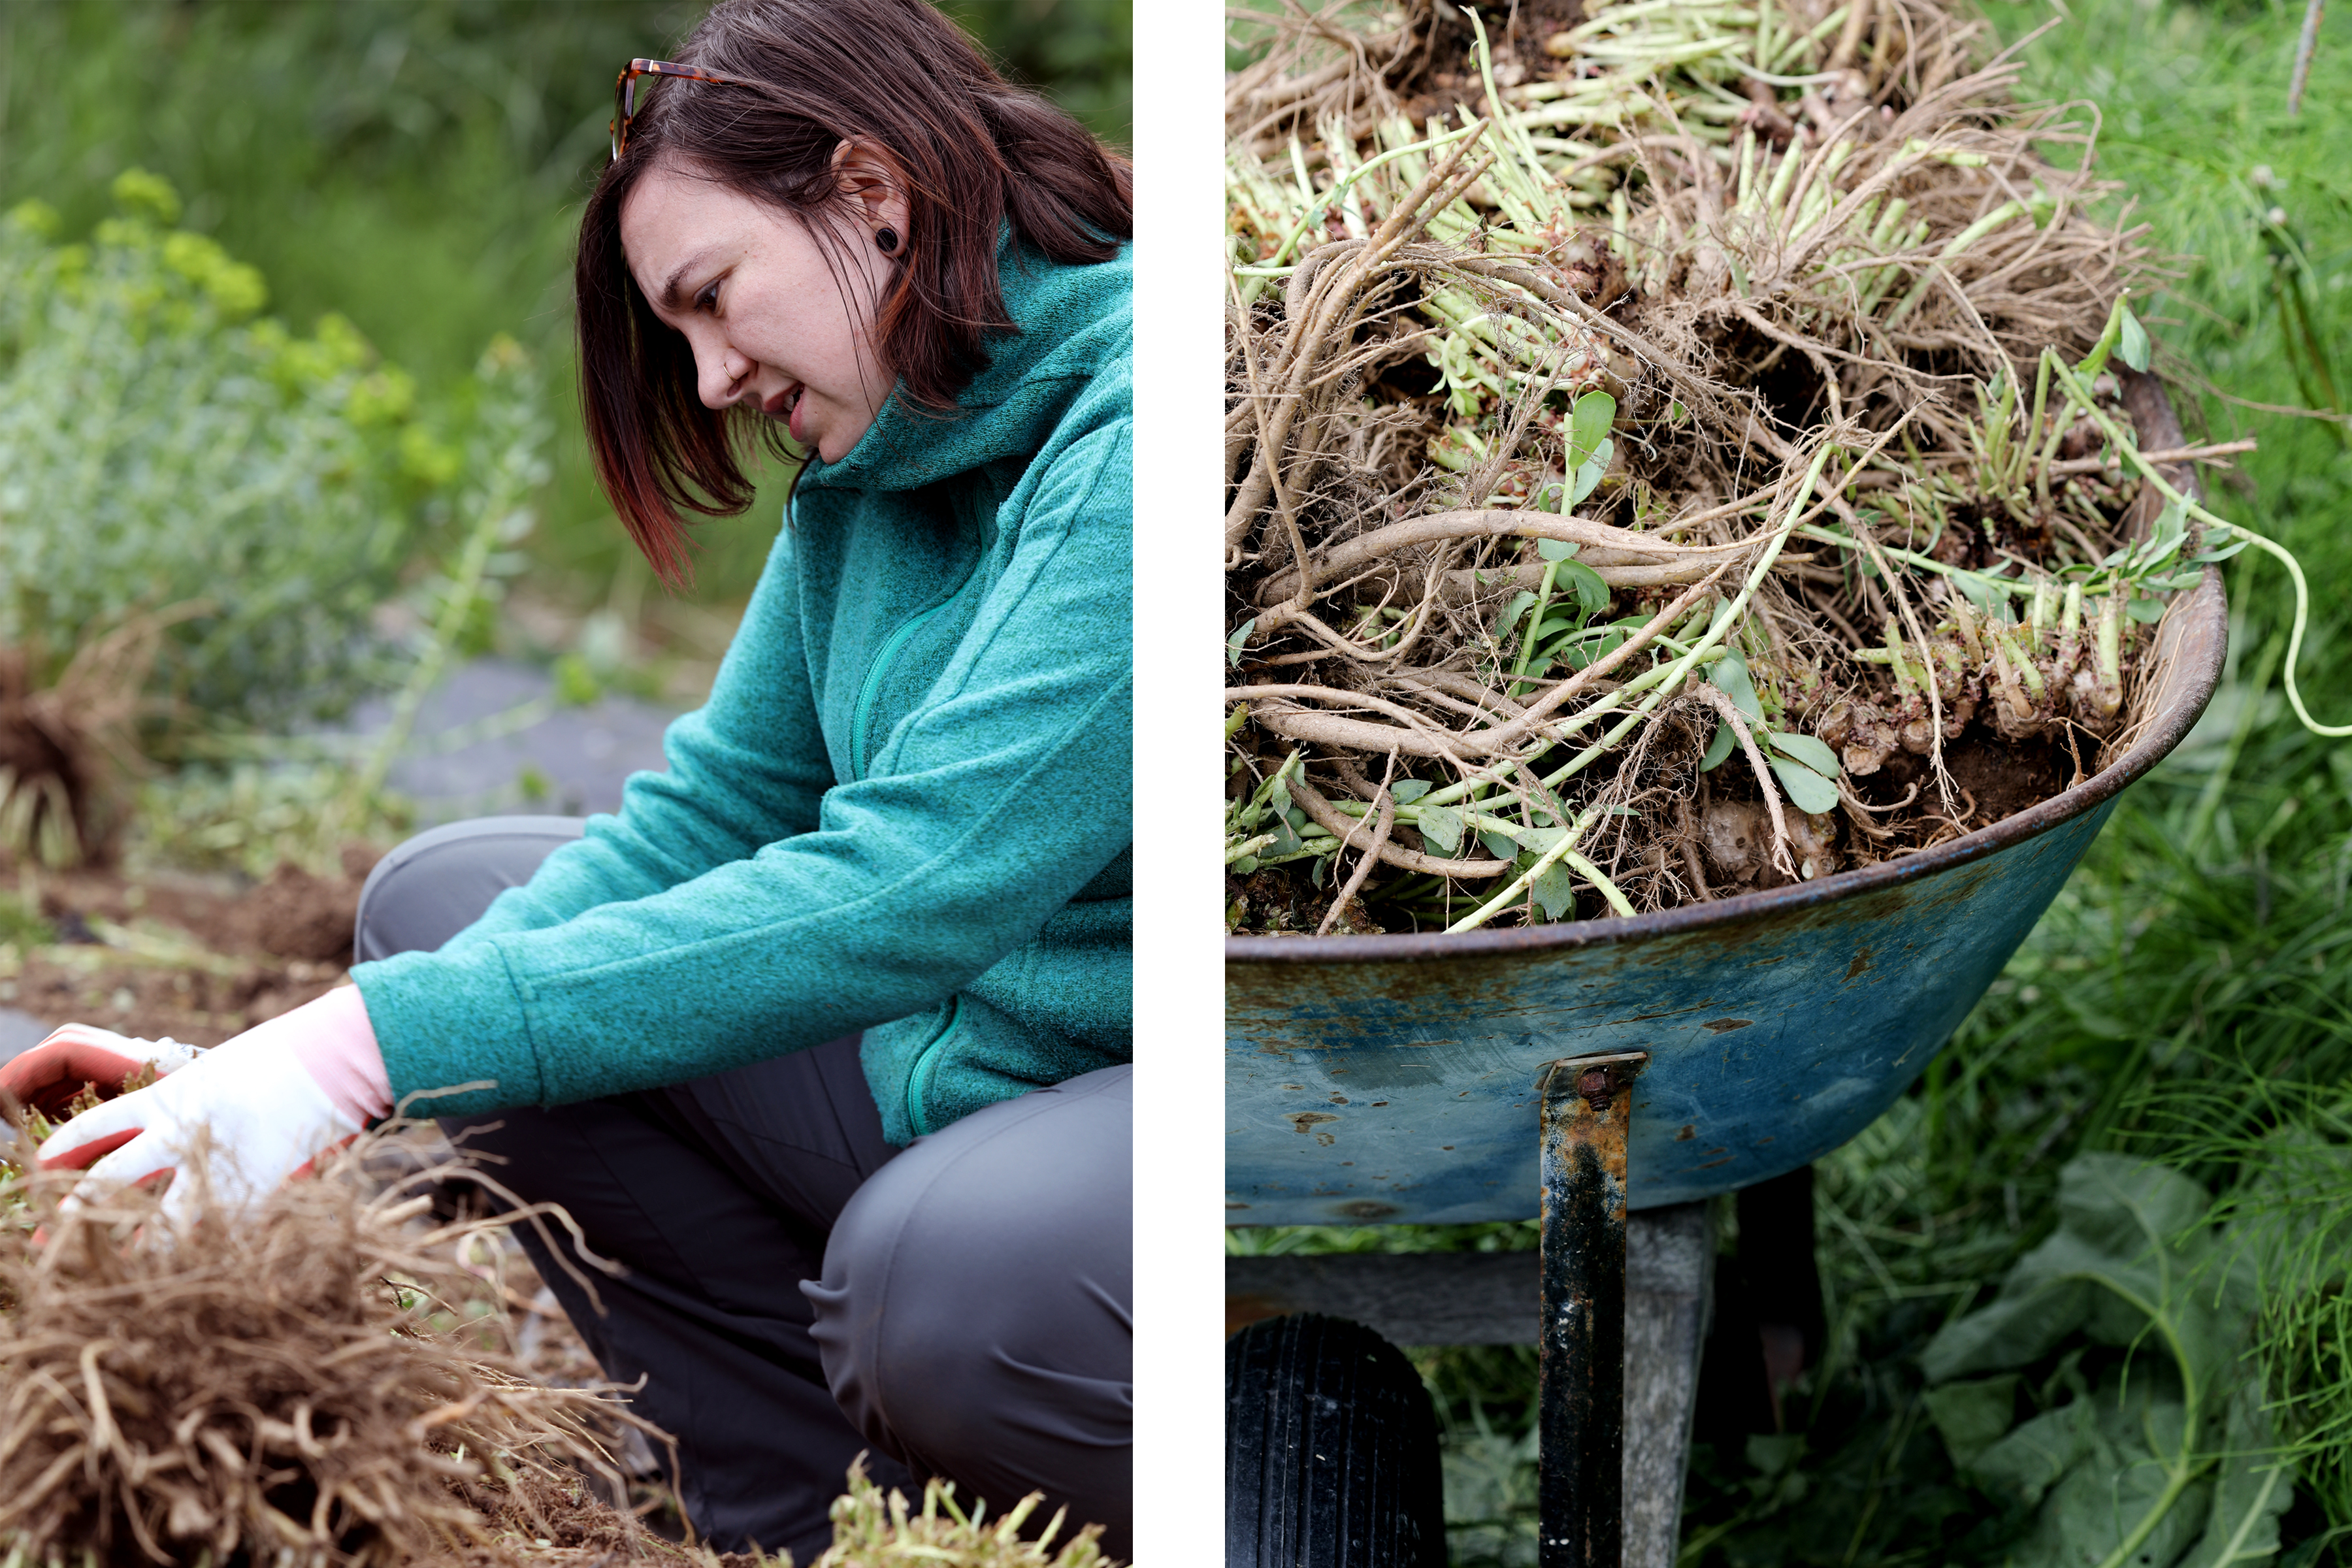 Woman harvesting plant roots by hand alongside another photo of a rustic wheelbarrow filled with roots.